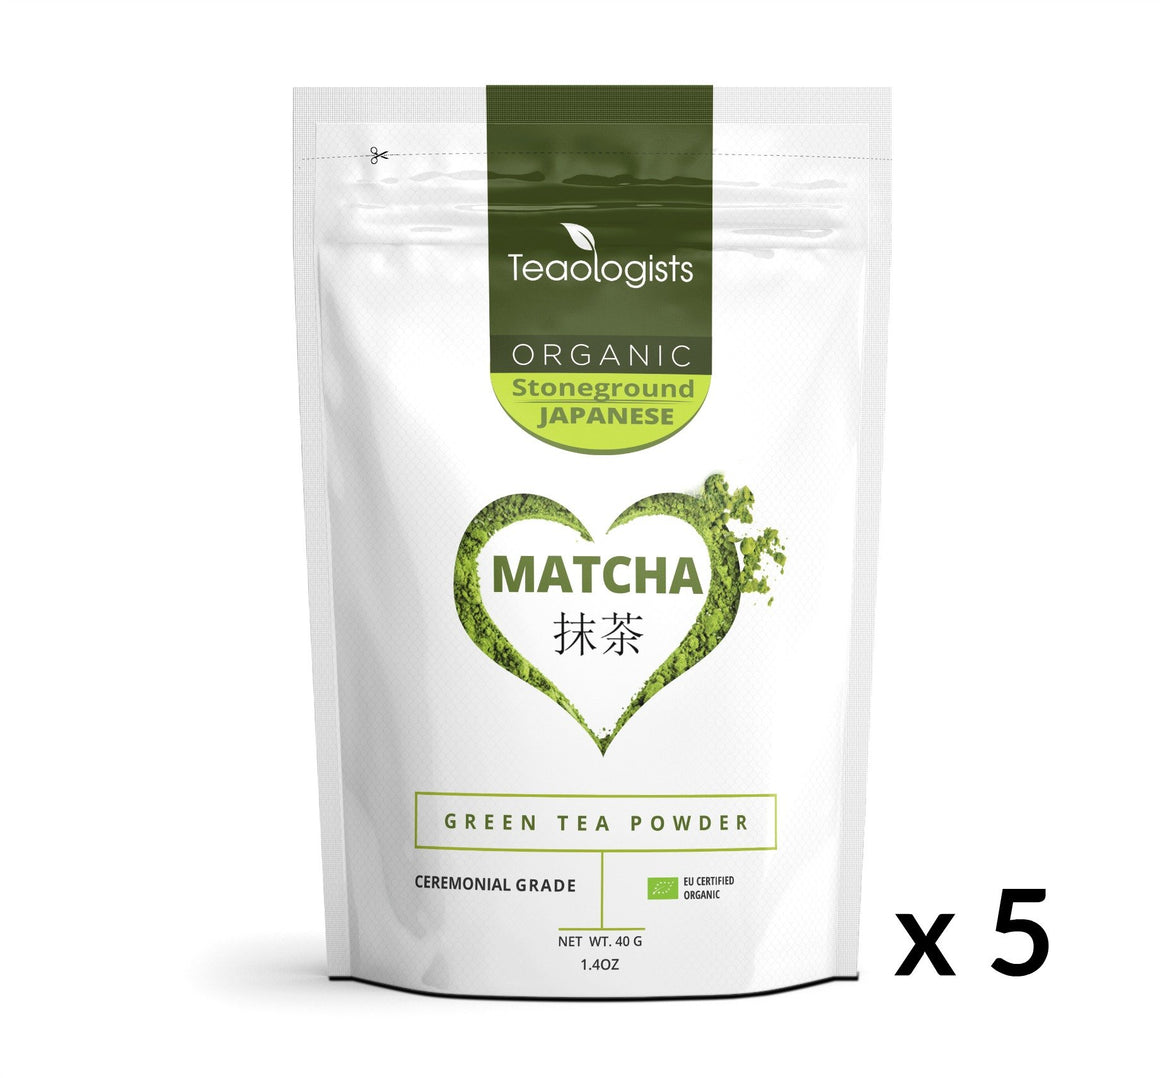 Matcha Green Tea - Organic Japanese Ceremonial Grade BULK BUY 200g (5 x 40g)